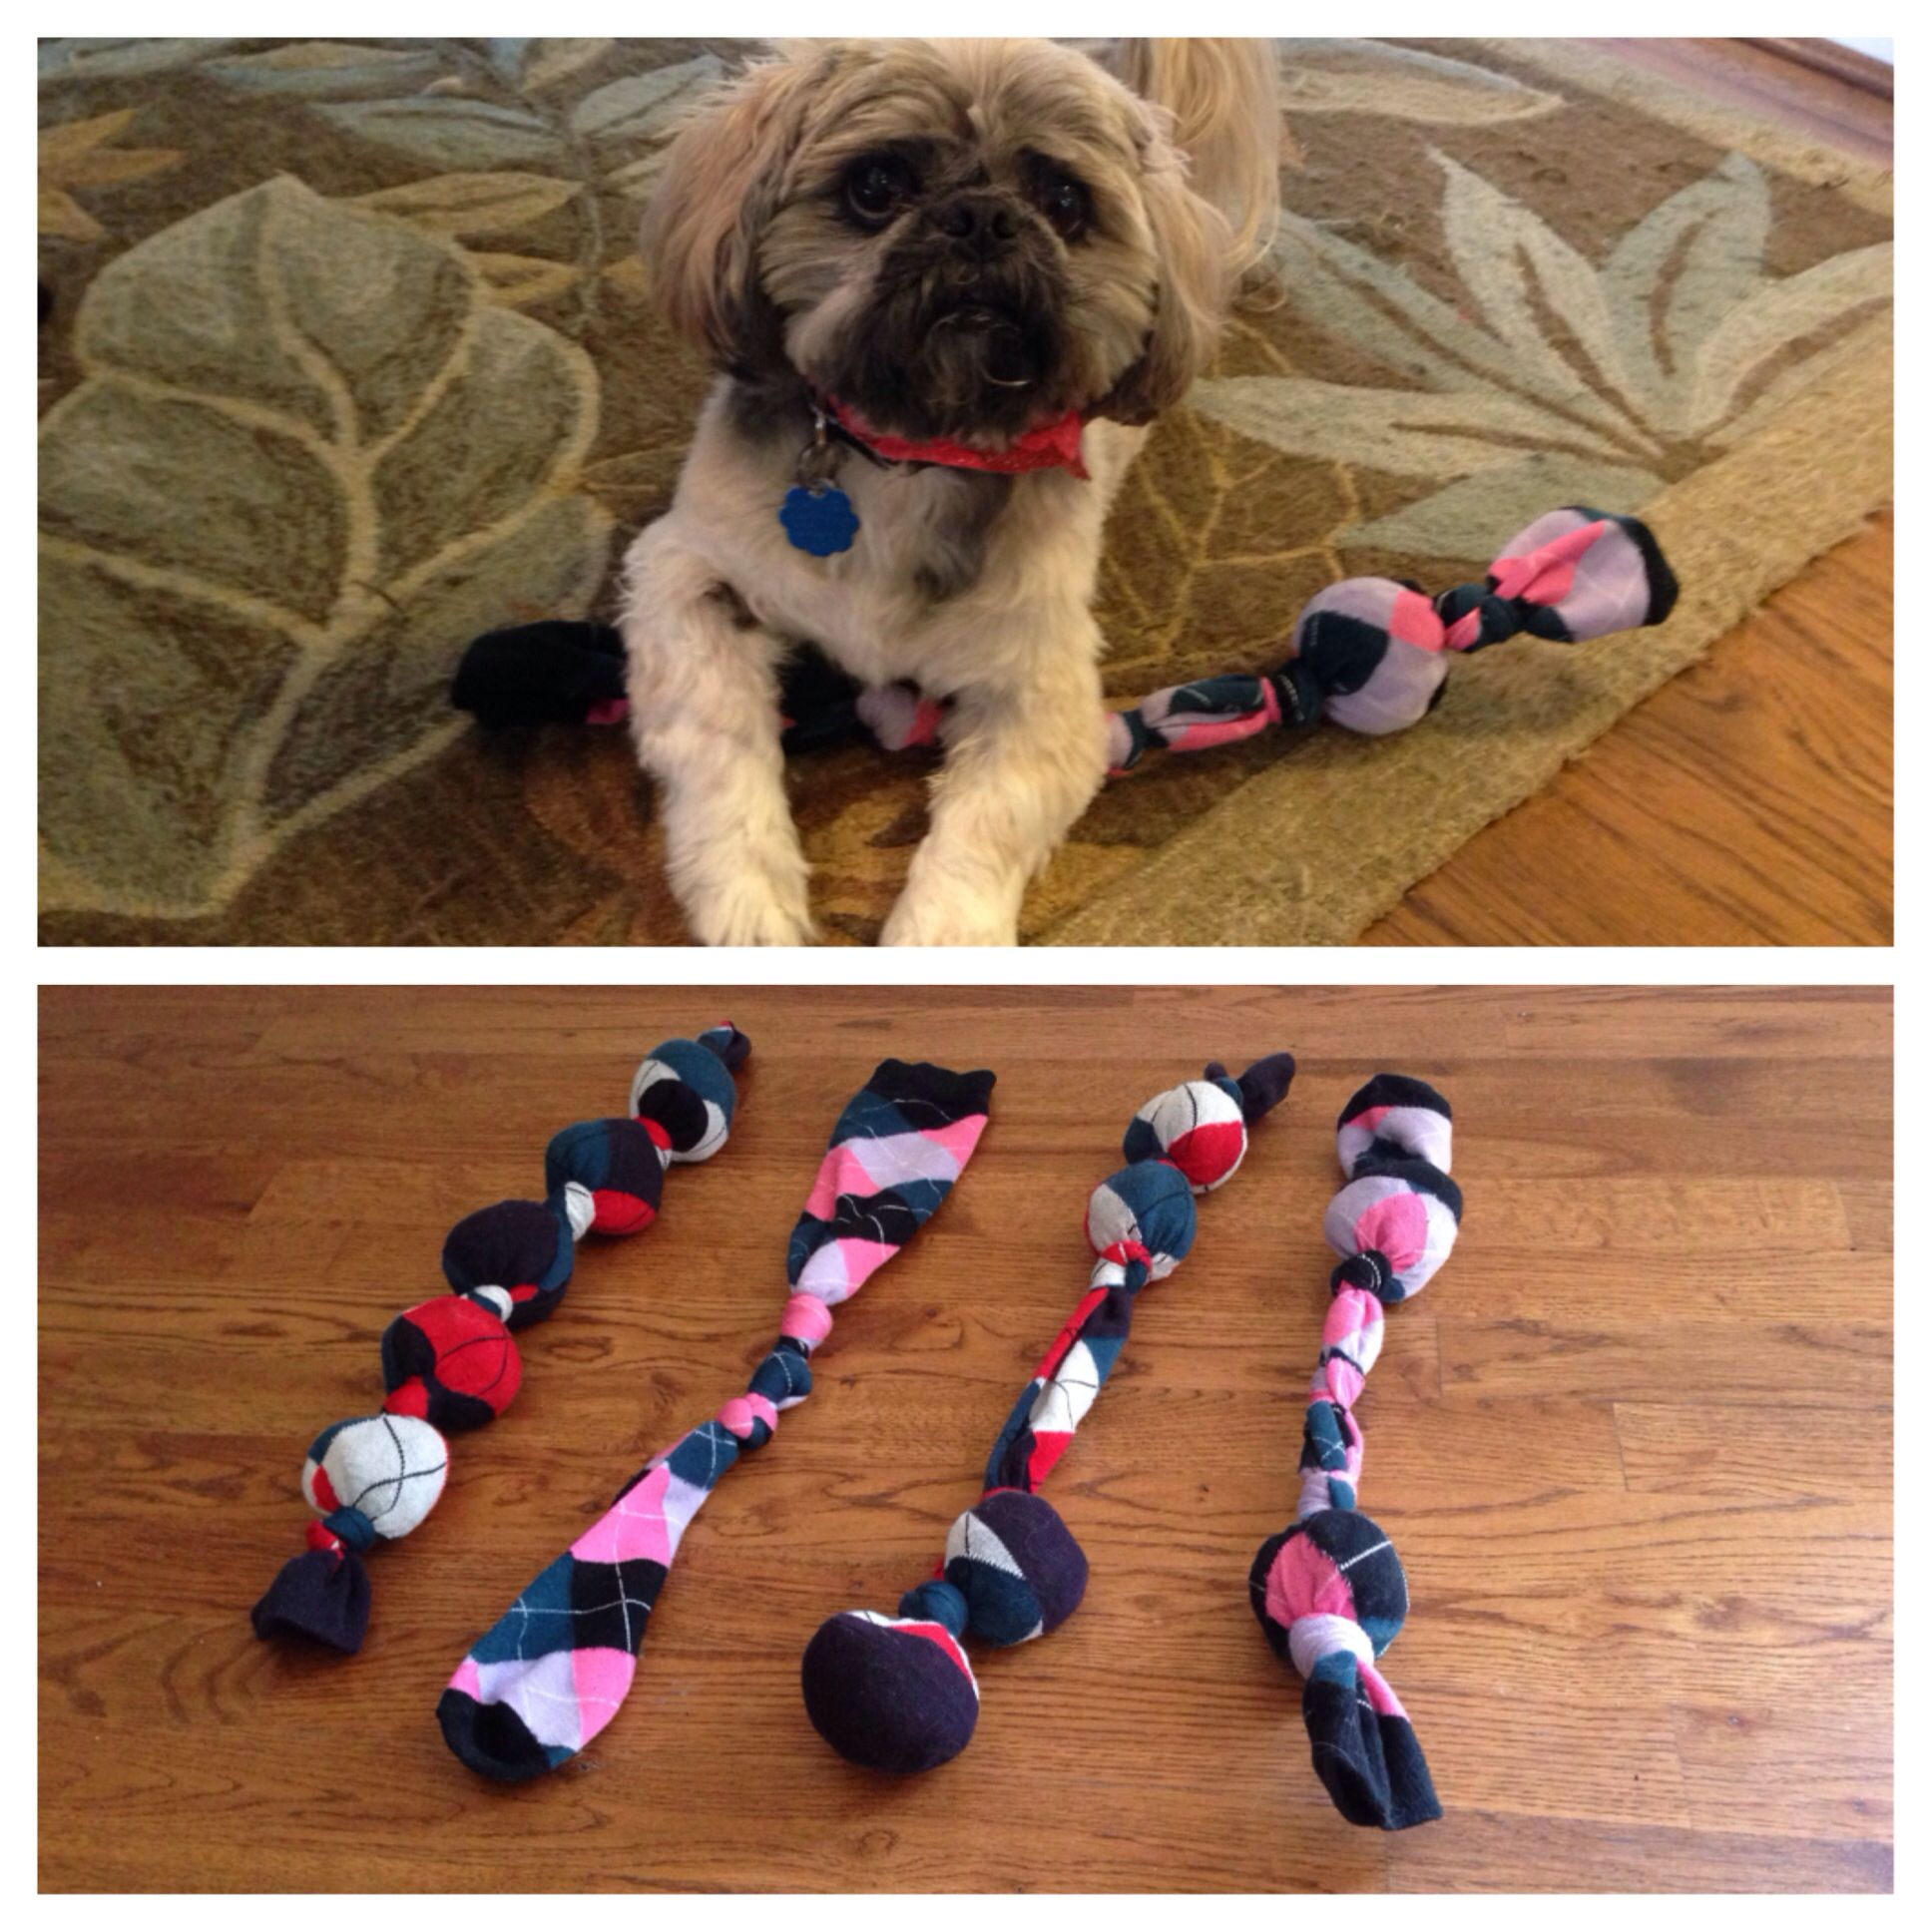 Diy Dog Toys From Socks Just Shove Some Socks In Another Sock